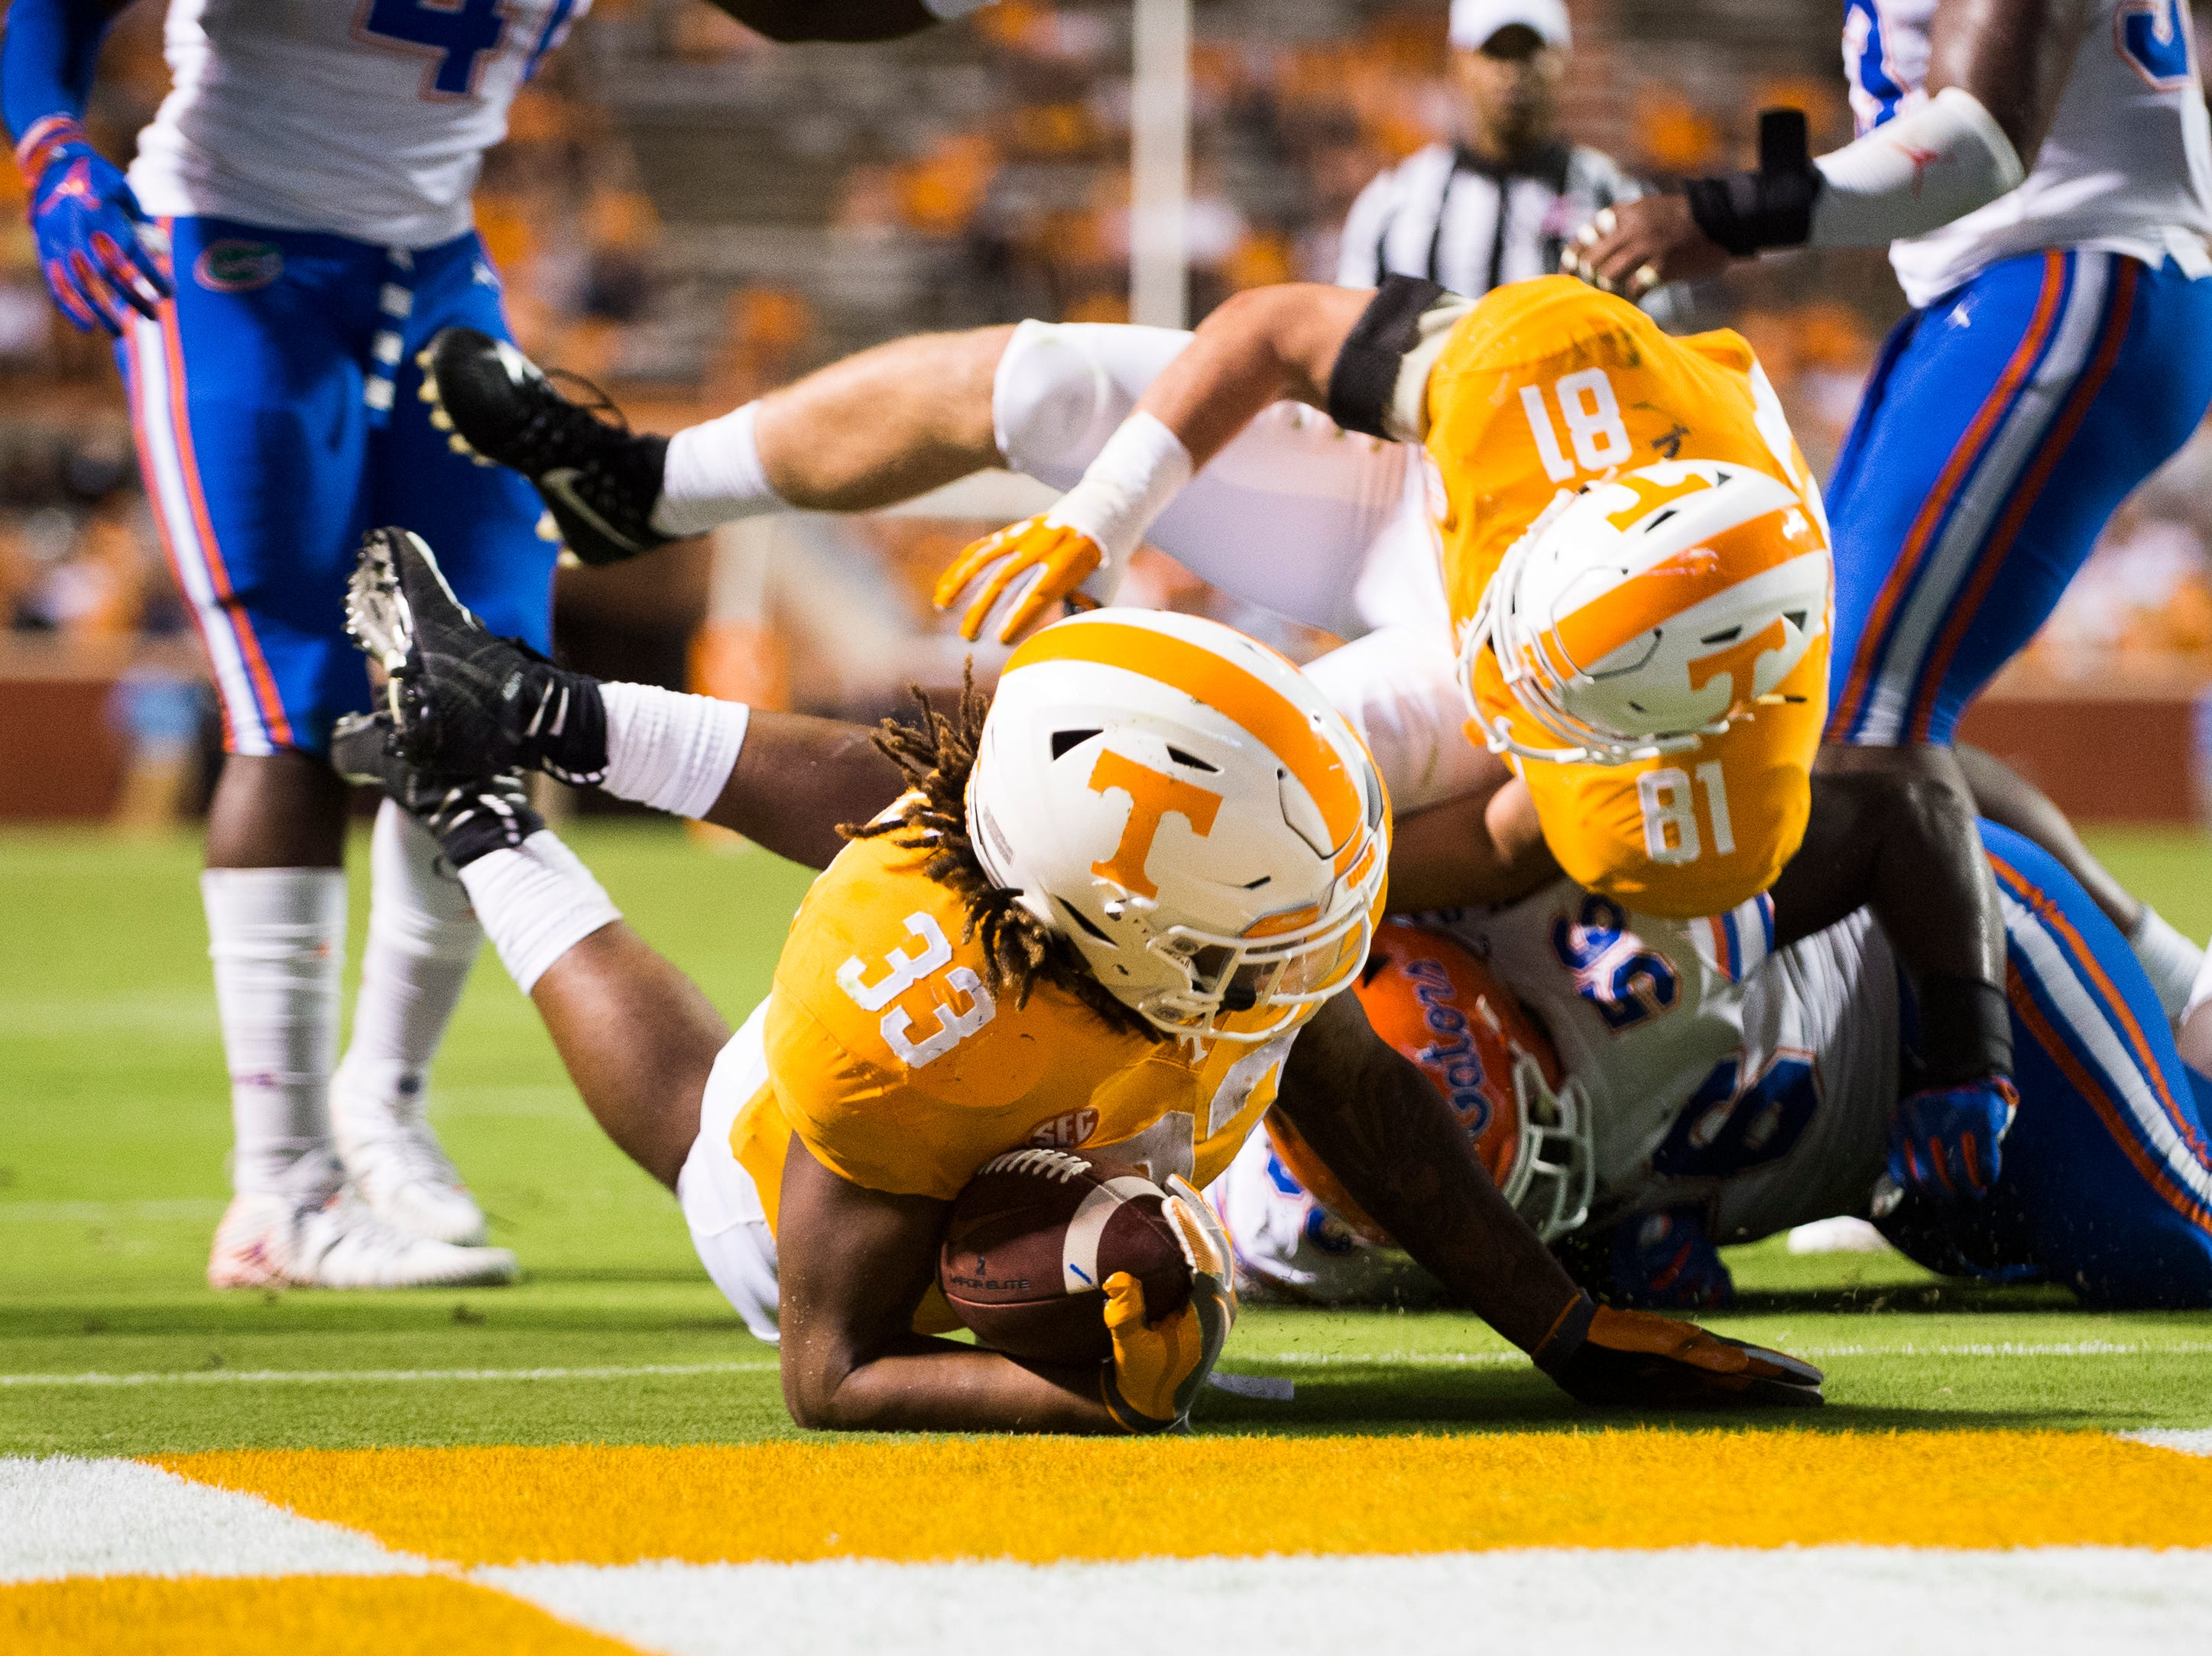 Tennessee running back Jeremy Banks (33)  lands in the end zone for a touchdown attempt during a game between Tennessee and Florida at Neyland Stadium in Knoxville, Tennessee on Saturday, September 22, 2018.